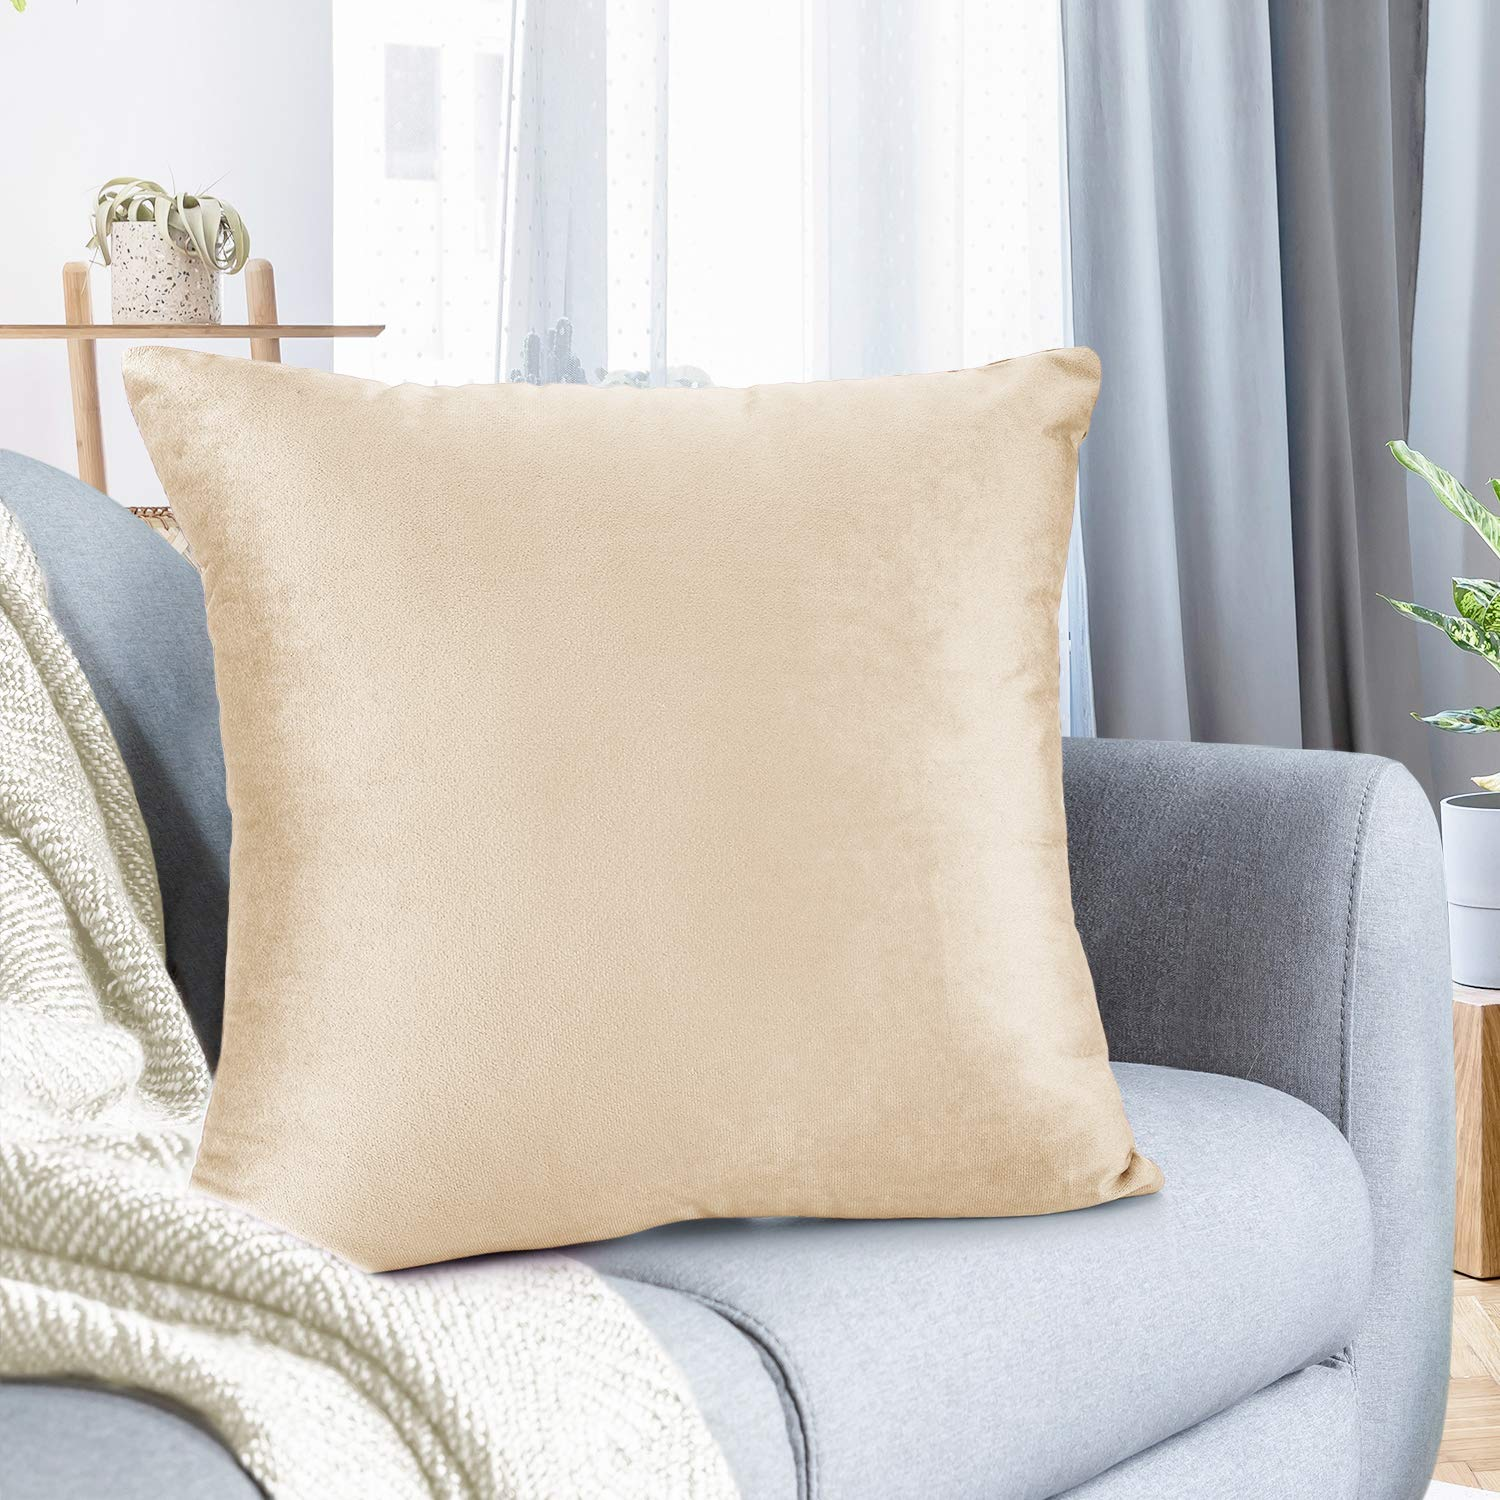 """Nestl Bedding Throw Pillow Cover 26"""" x 26"""" Soft Square Decorative Throw Pillow Covers Cozy Velvet Cushion Case for Sofa Couch Bedroom - Beige Cream"""